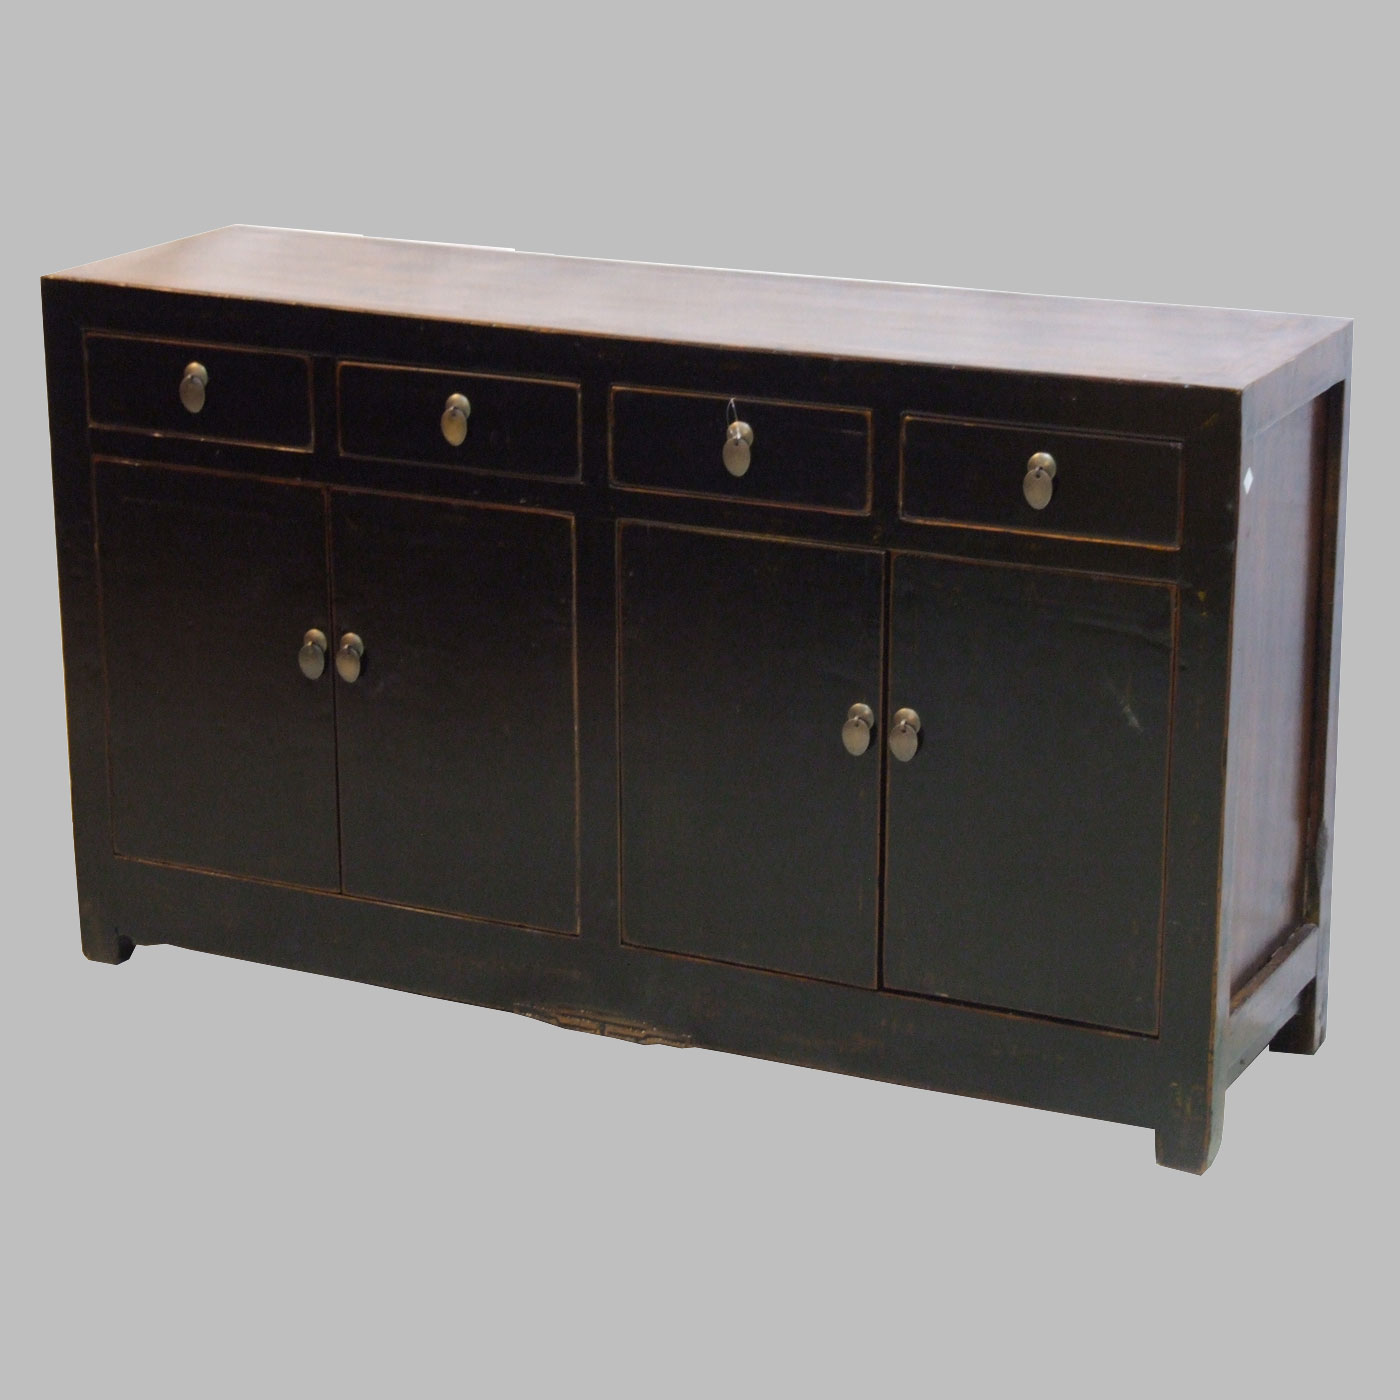 altes schwarzes sideboard mit 4 t ren und 4 sch ben batavia. Black Bedroom Furniture Sets. Home Design Ideas